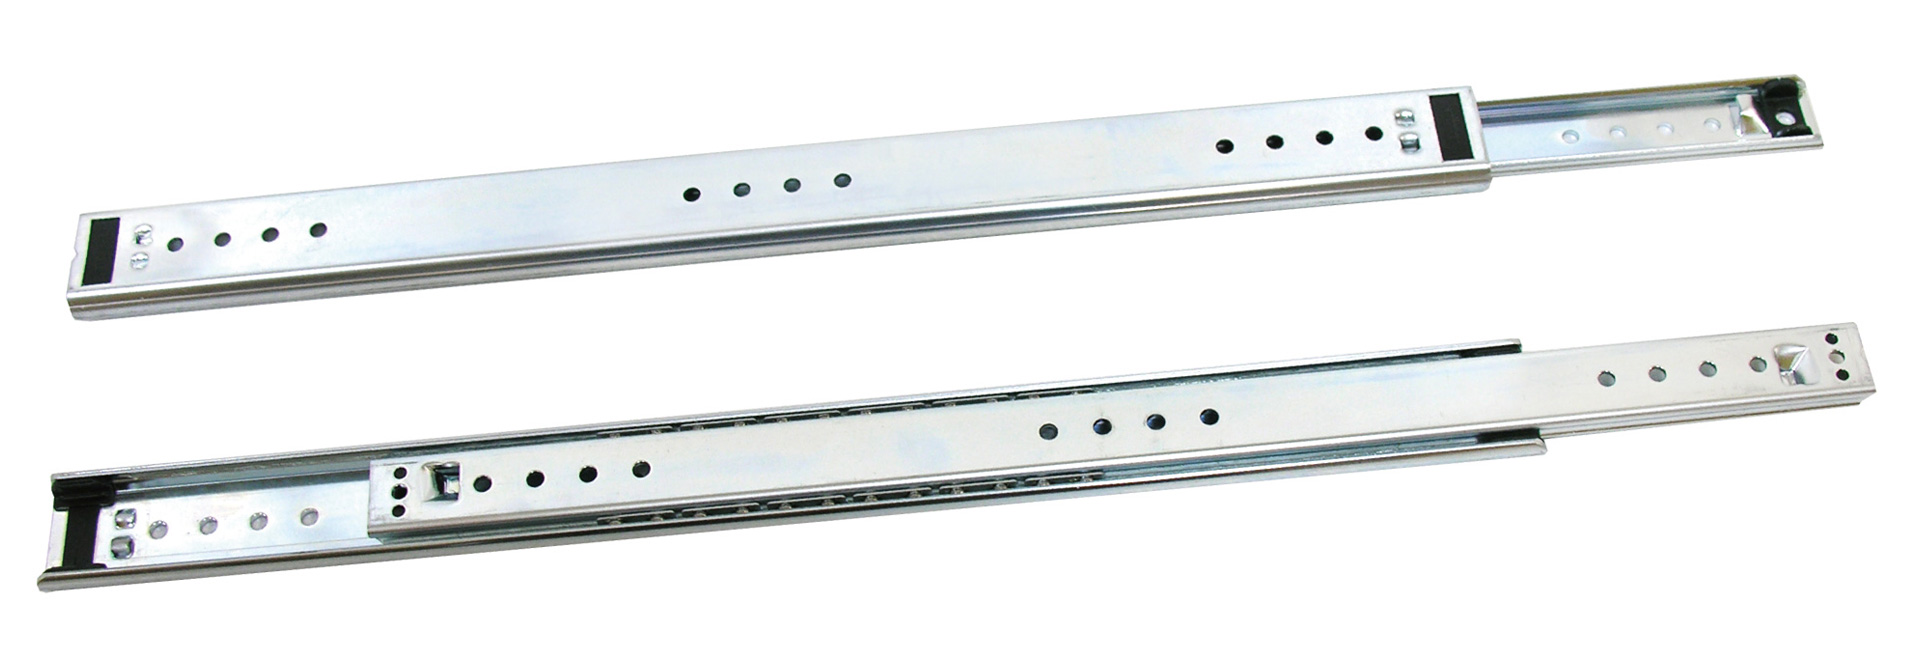 Cabinet Drawer Rails 39mm Ball Bearing Slide